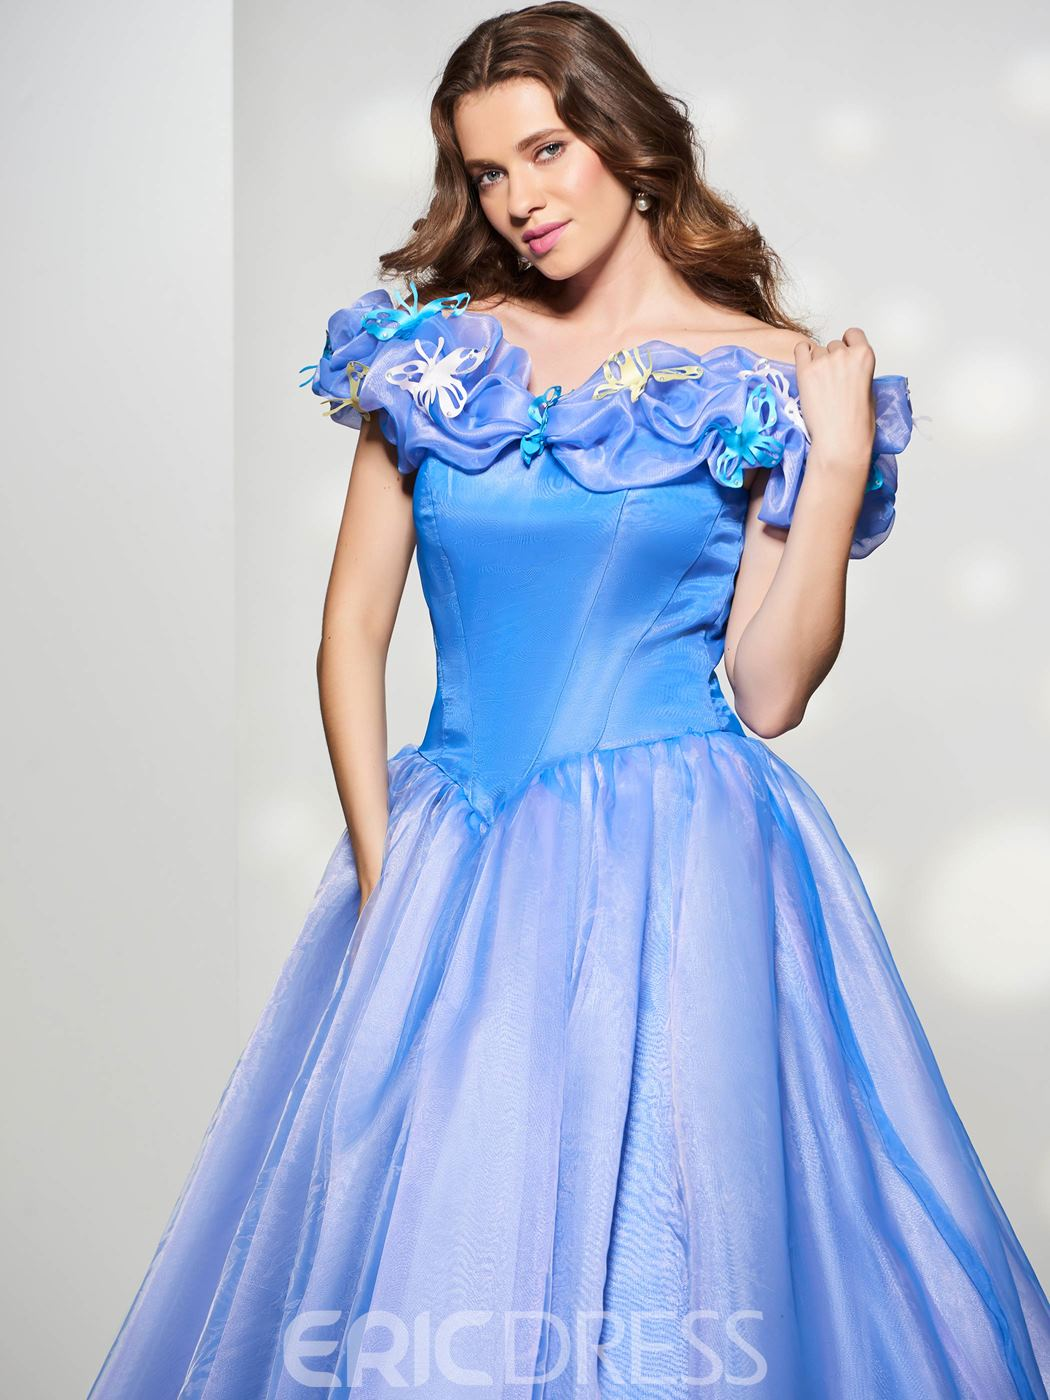 Ericdress Fairy Cinderella Ball Off The Shoulder Flower Lace-Up Back Court Train Prom Gown